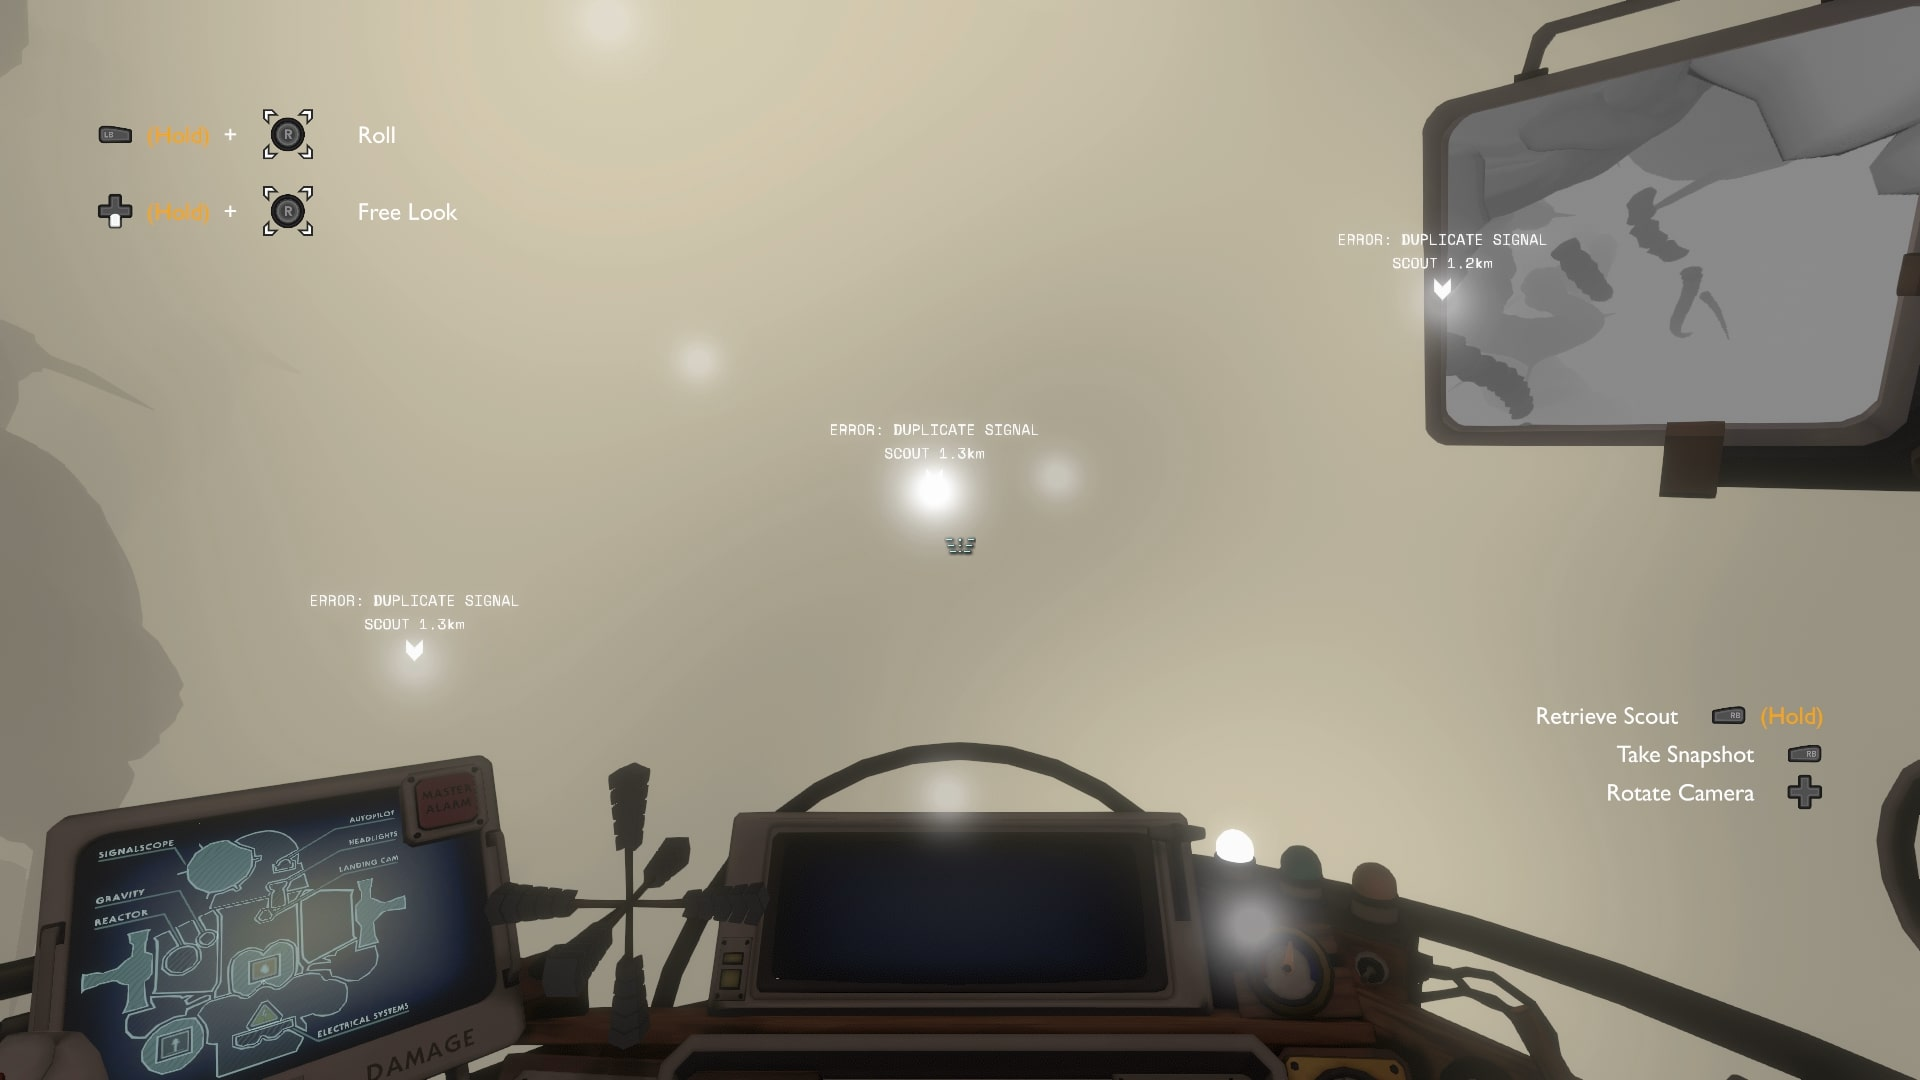 Outer Wilds Dark Bramble: How to Get Past the Angler Fish and Find